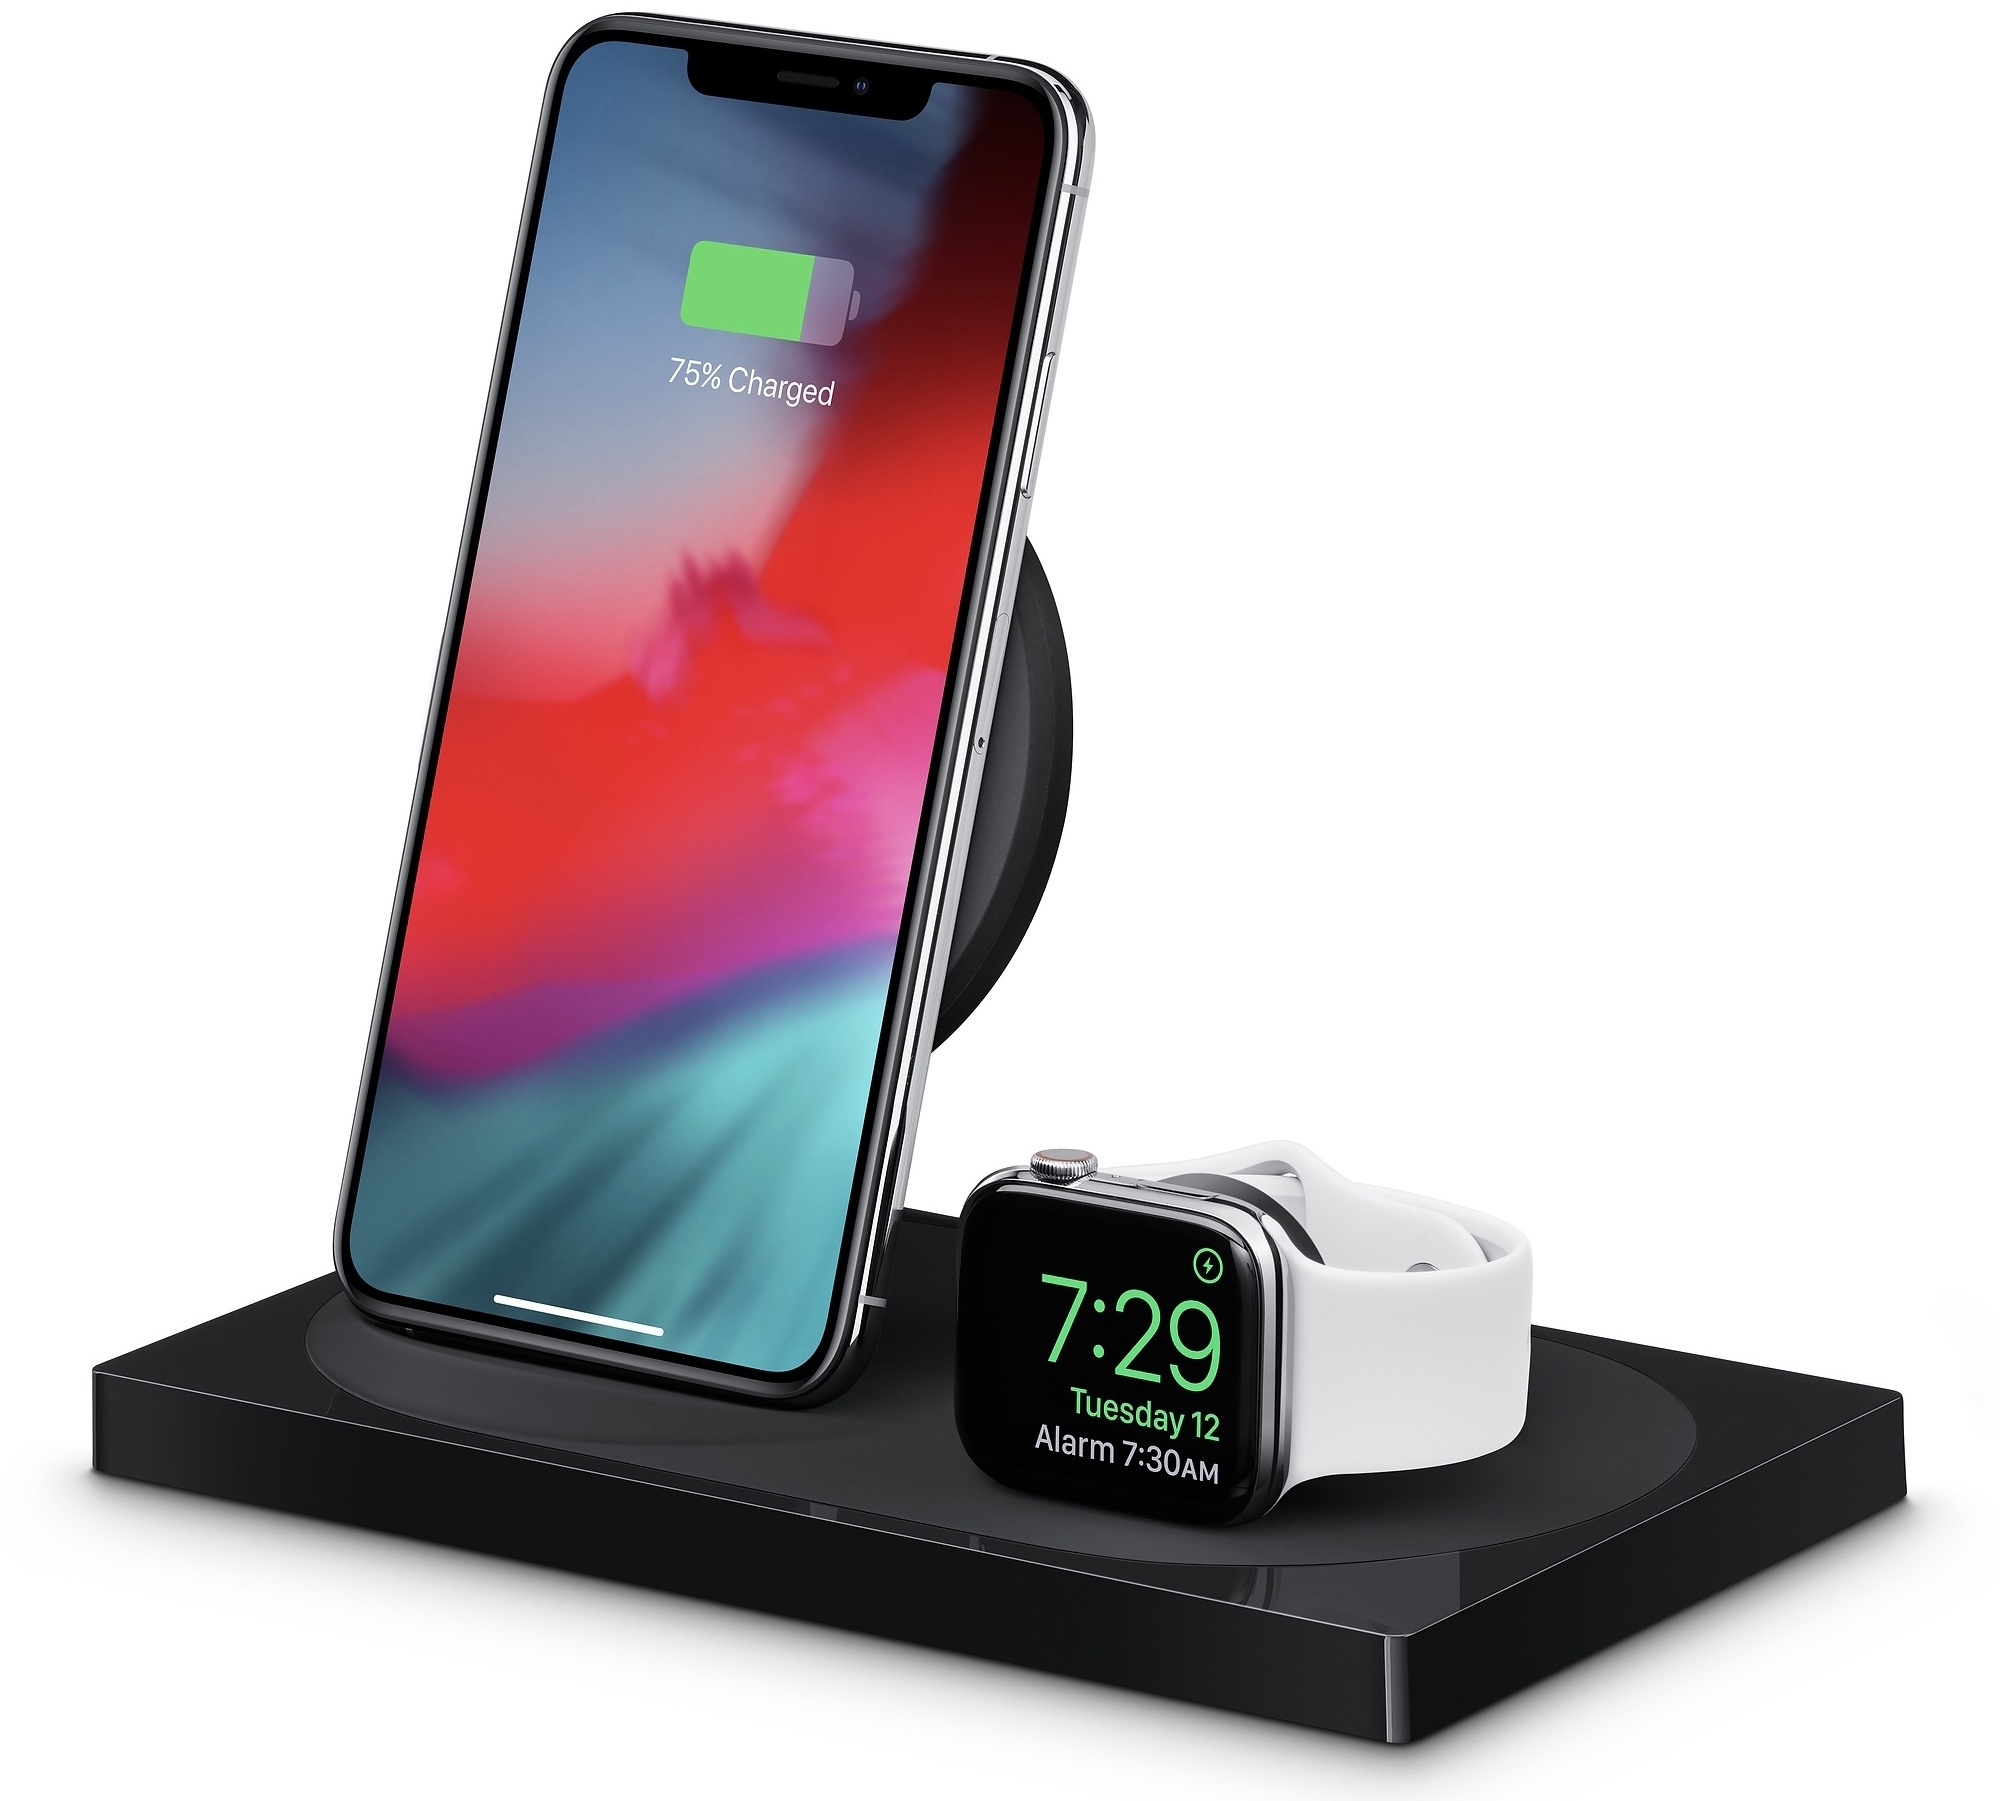 buy online 6b654 38d8a Belkin Launches Wireless Charging Dock for iPhone and Apple Watch ...